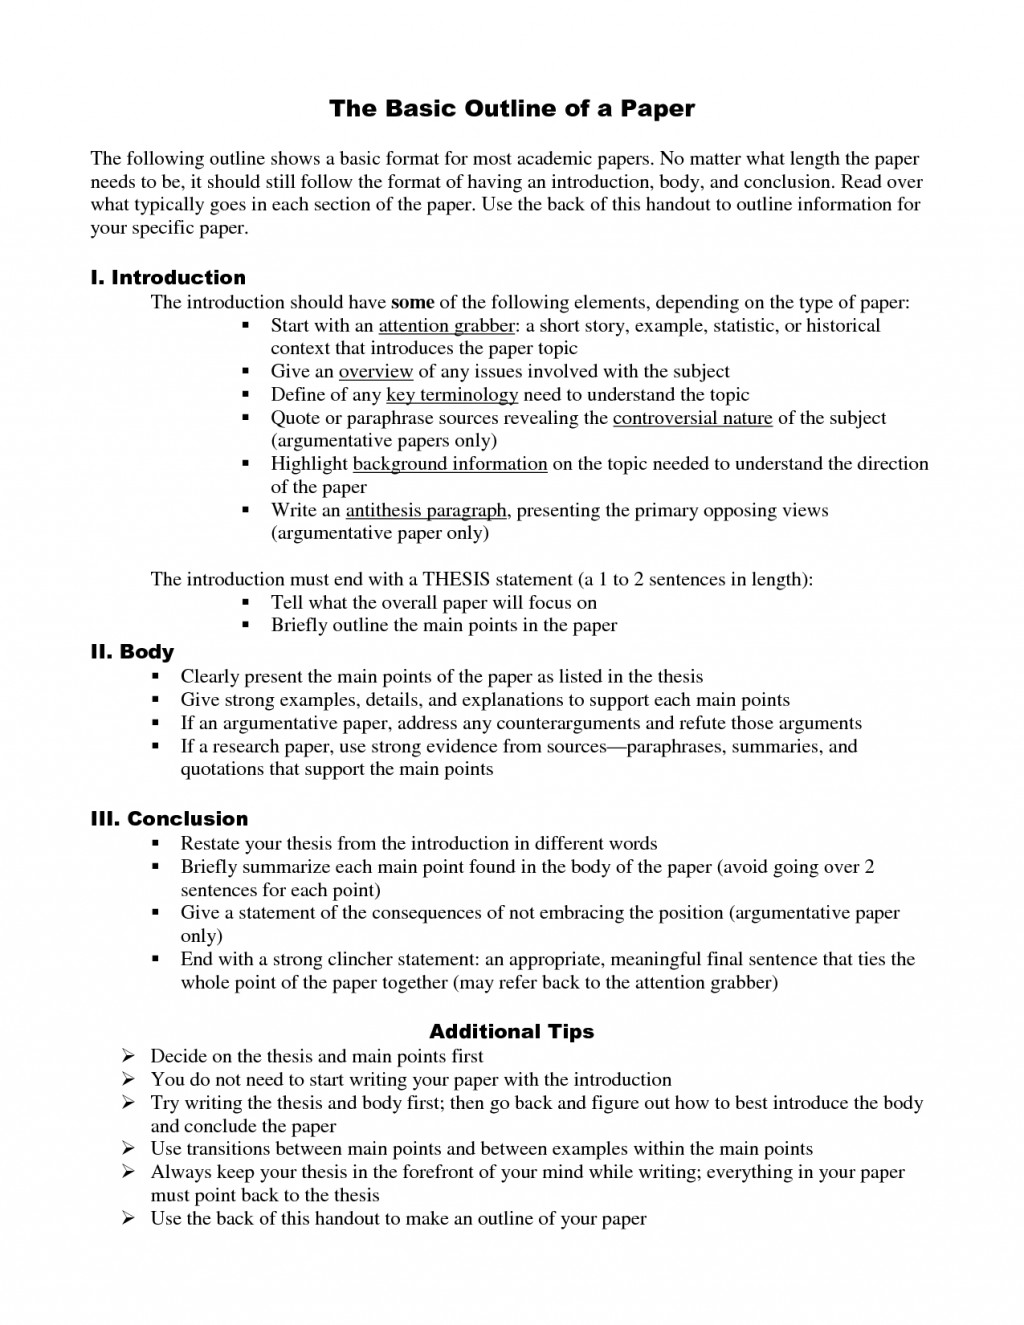 017 Paper Outline Research Template 7gkv1usl Example Ofn For Sensational Of An A Informal Examples Writing In Apa Format Large